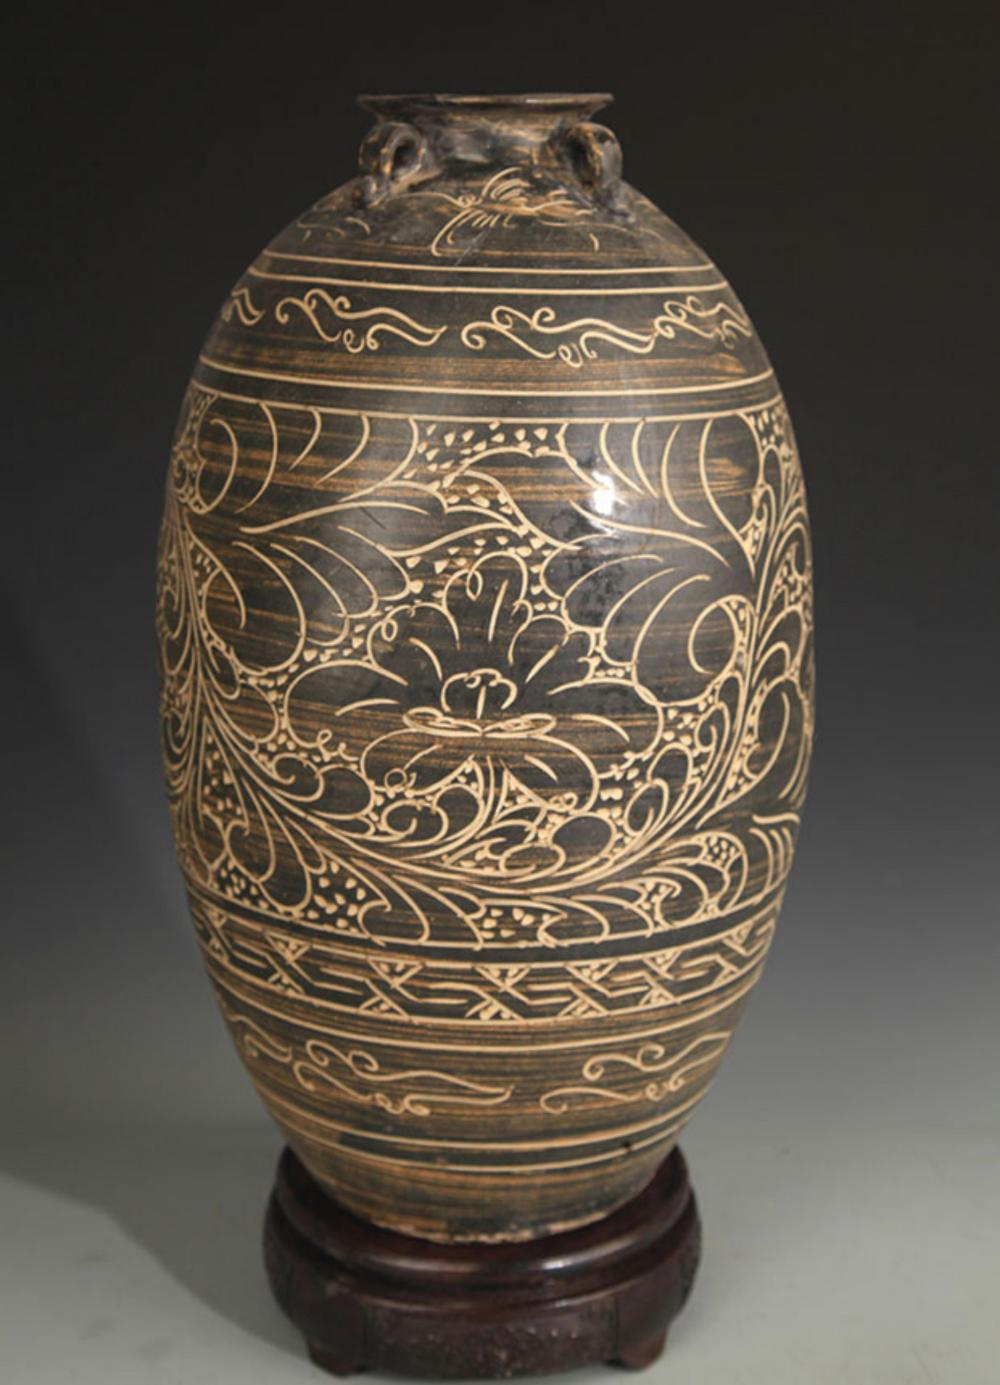 CI ZHOU KILN FLOWER PATTERN FOUR TILES VASE